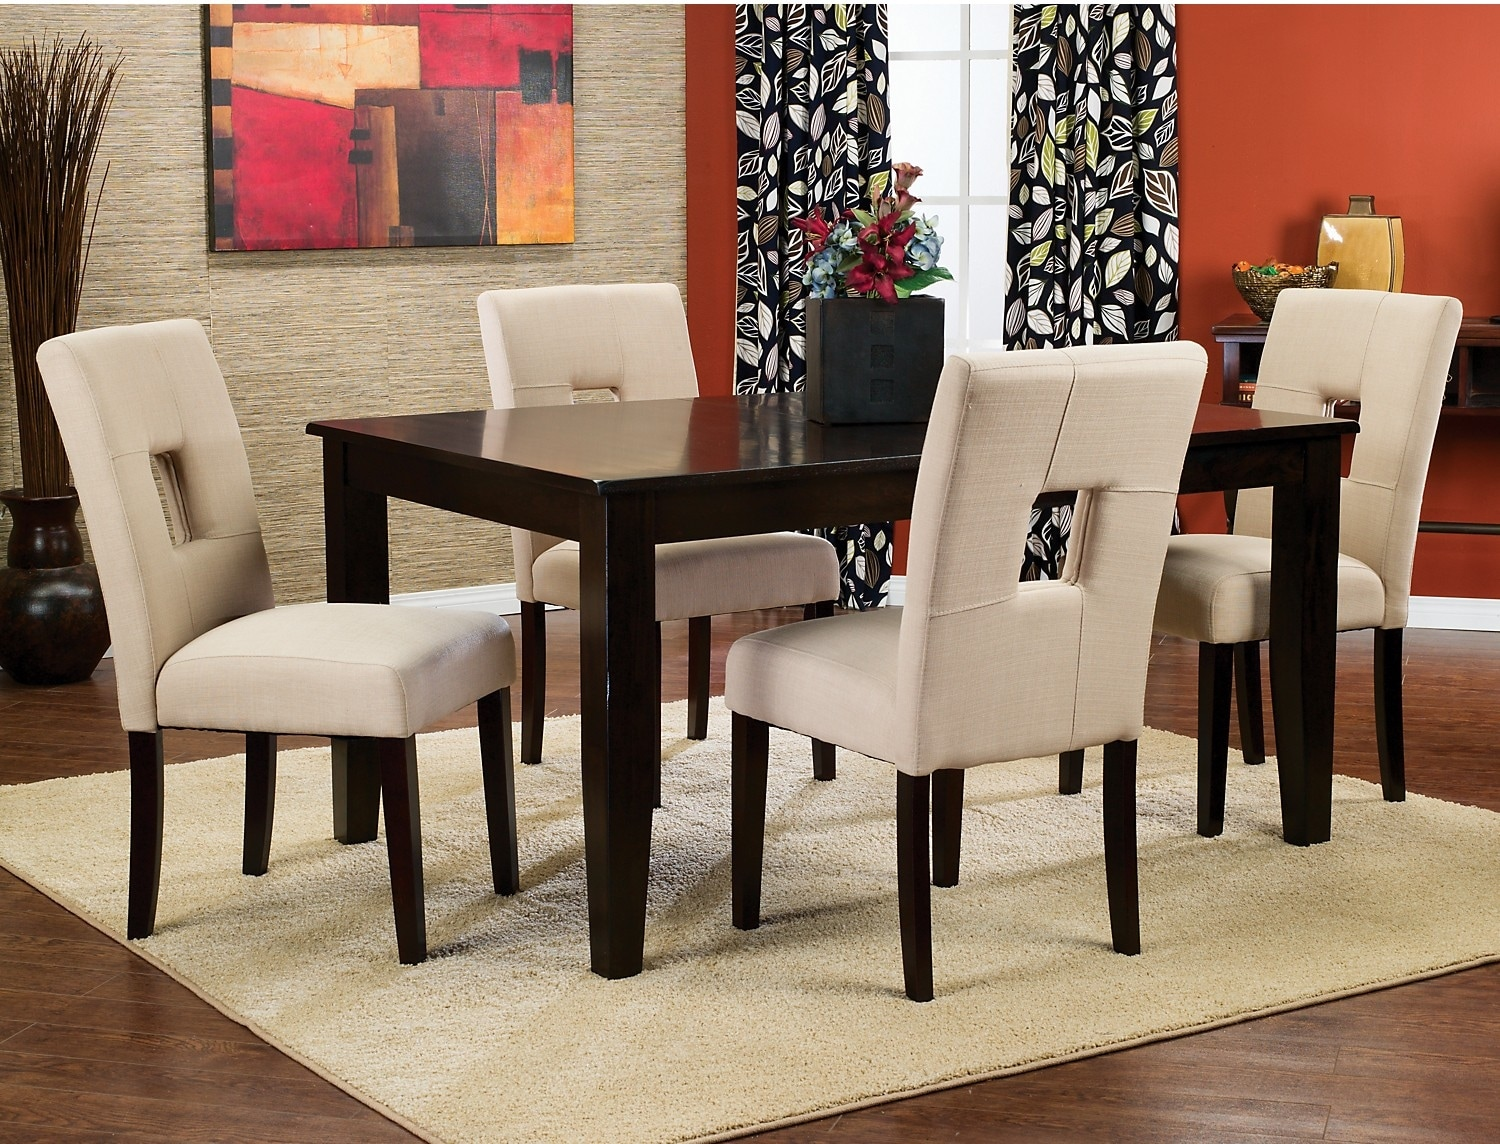 Dakota 5-Piece Dining Package with Beige Chairs